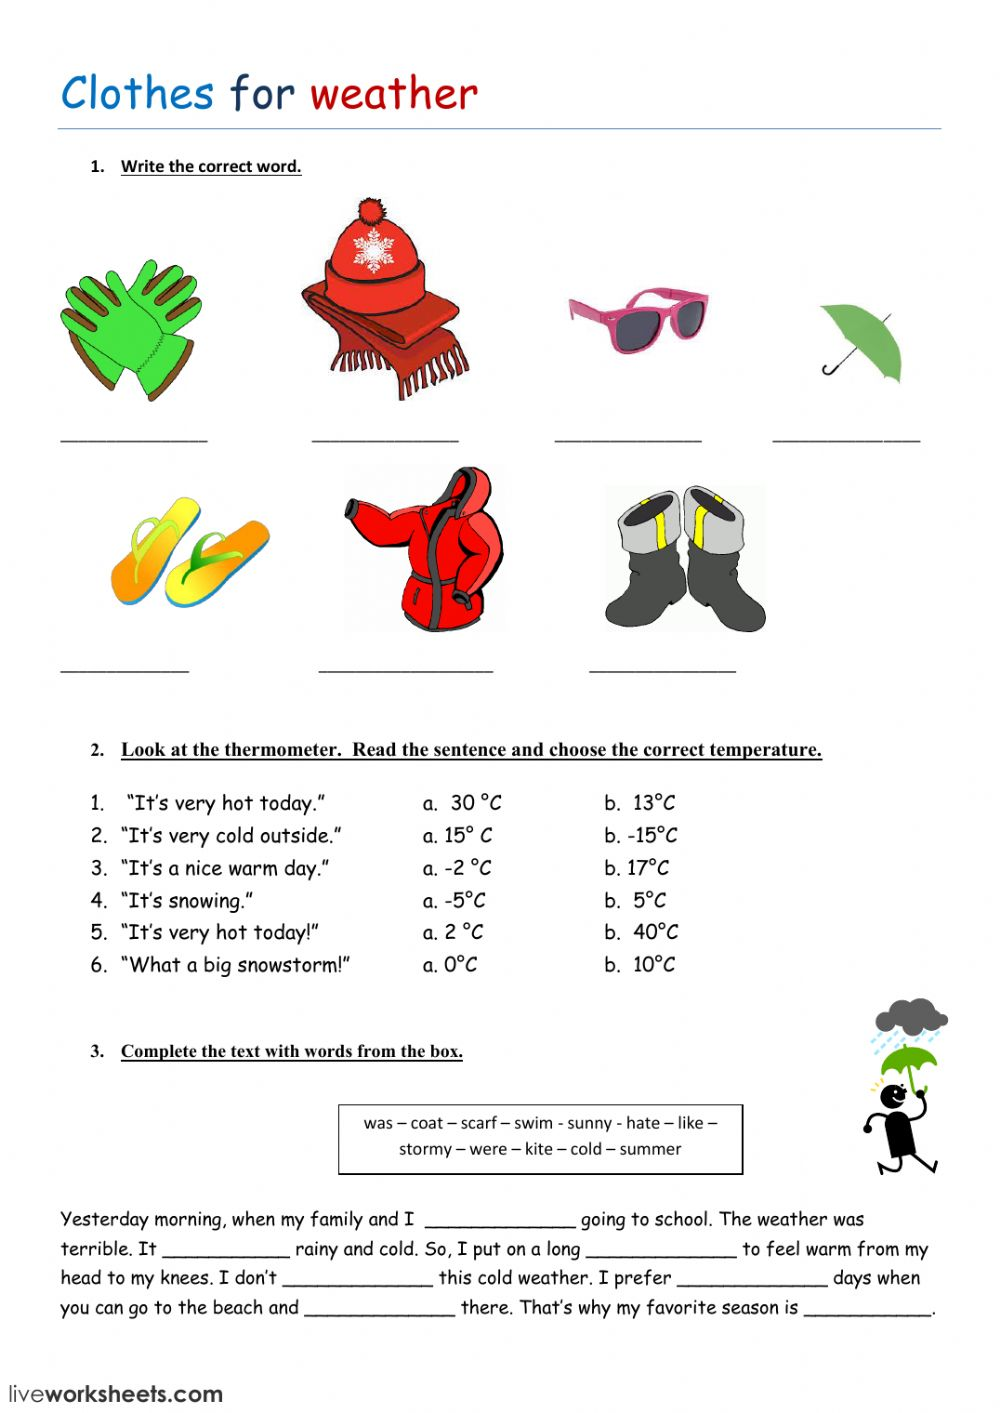 Clothes And Weather Interactive Worksheet